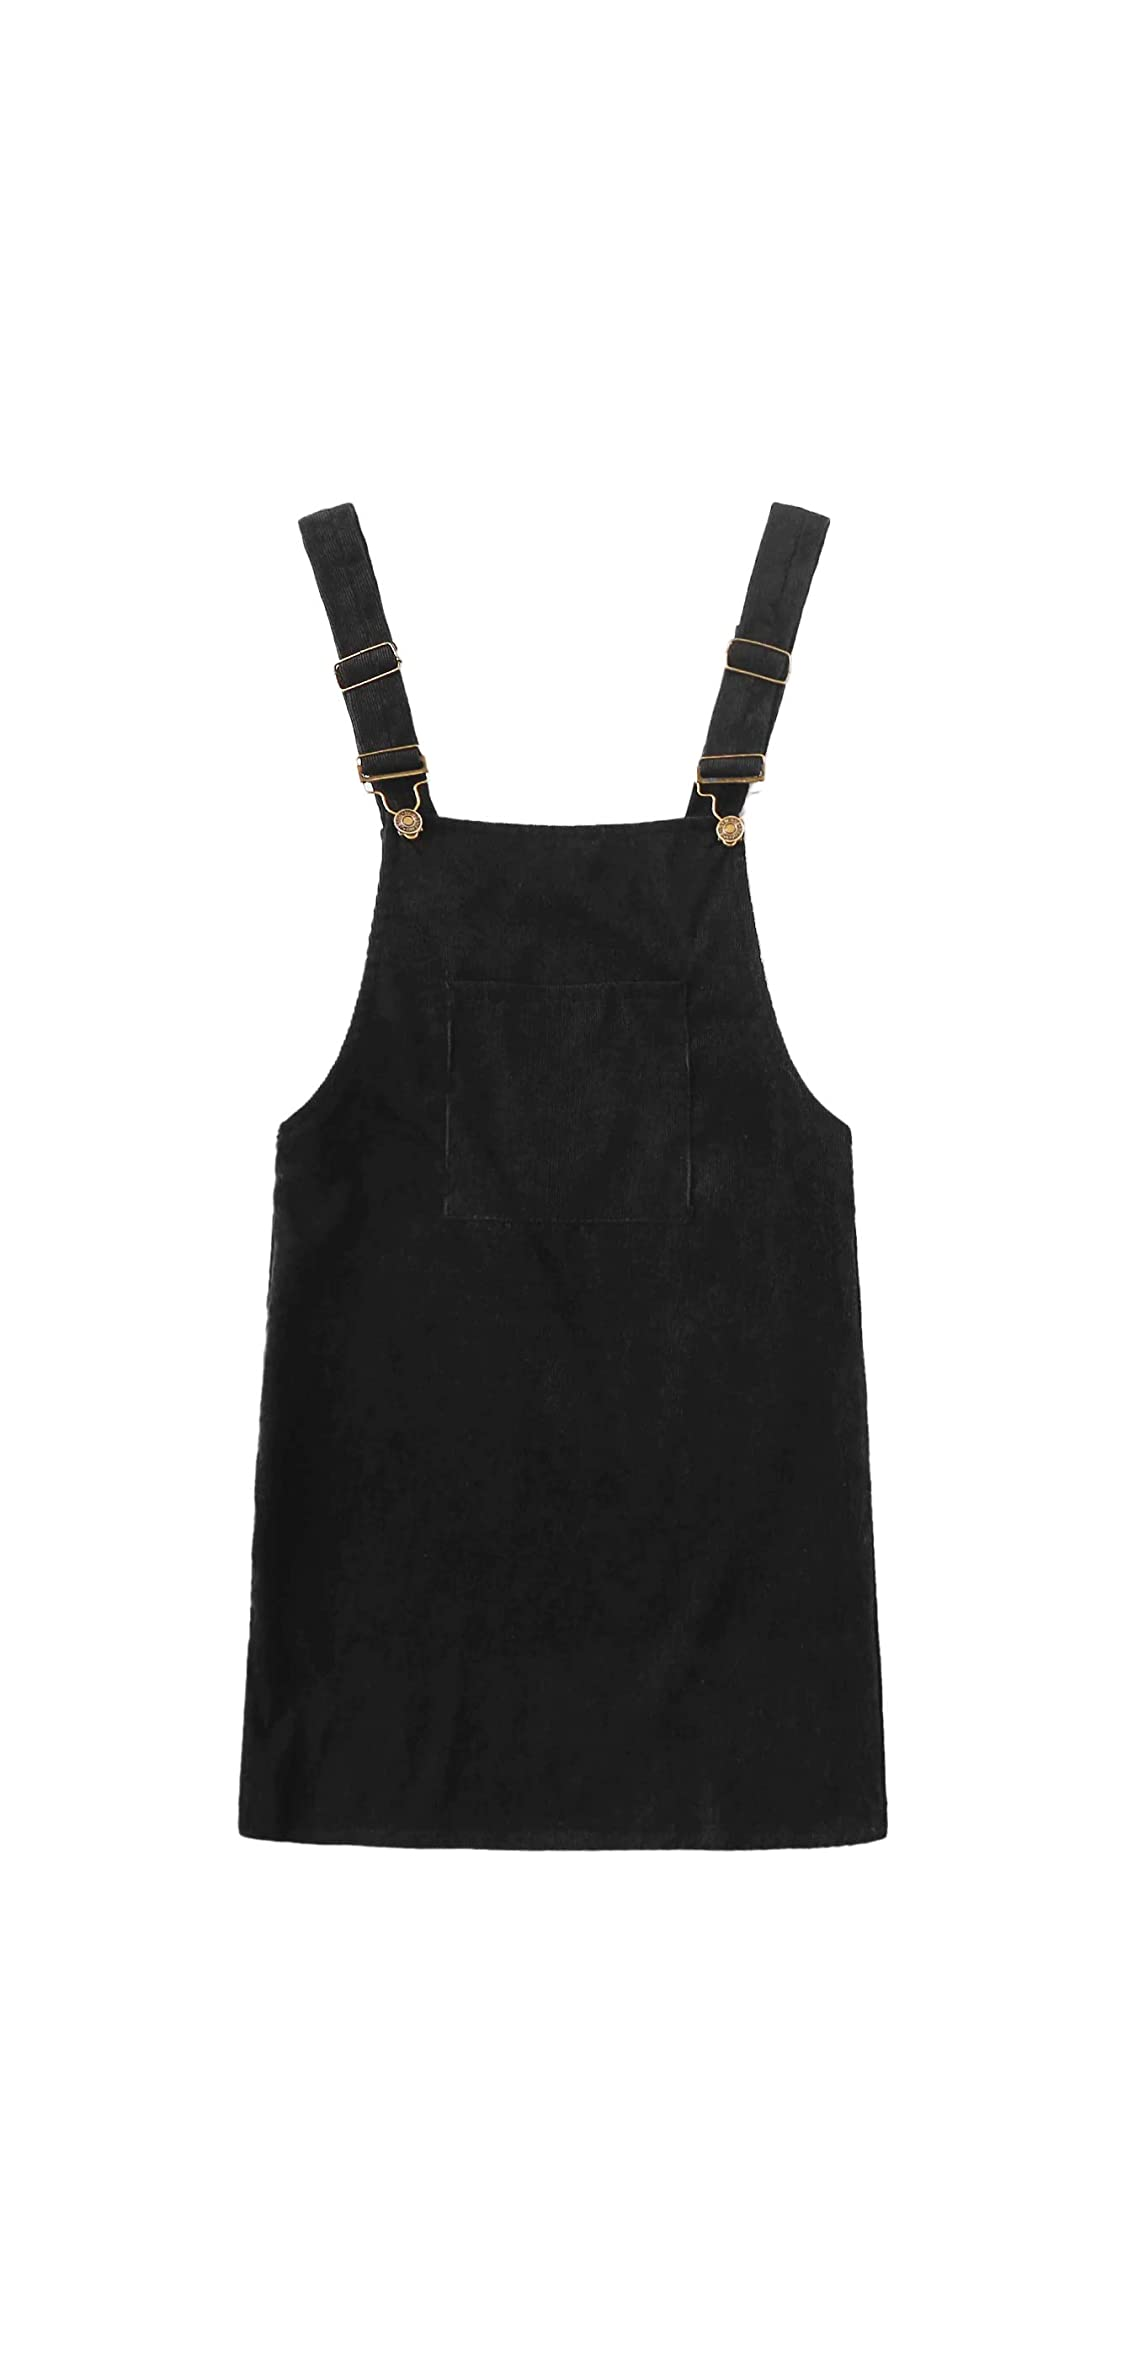 Women's Corduroy Button Down Pinafore Overall Dress With